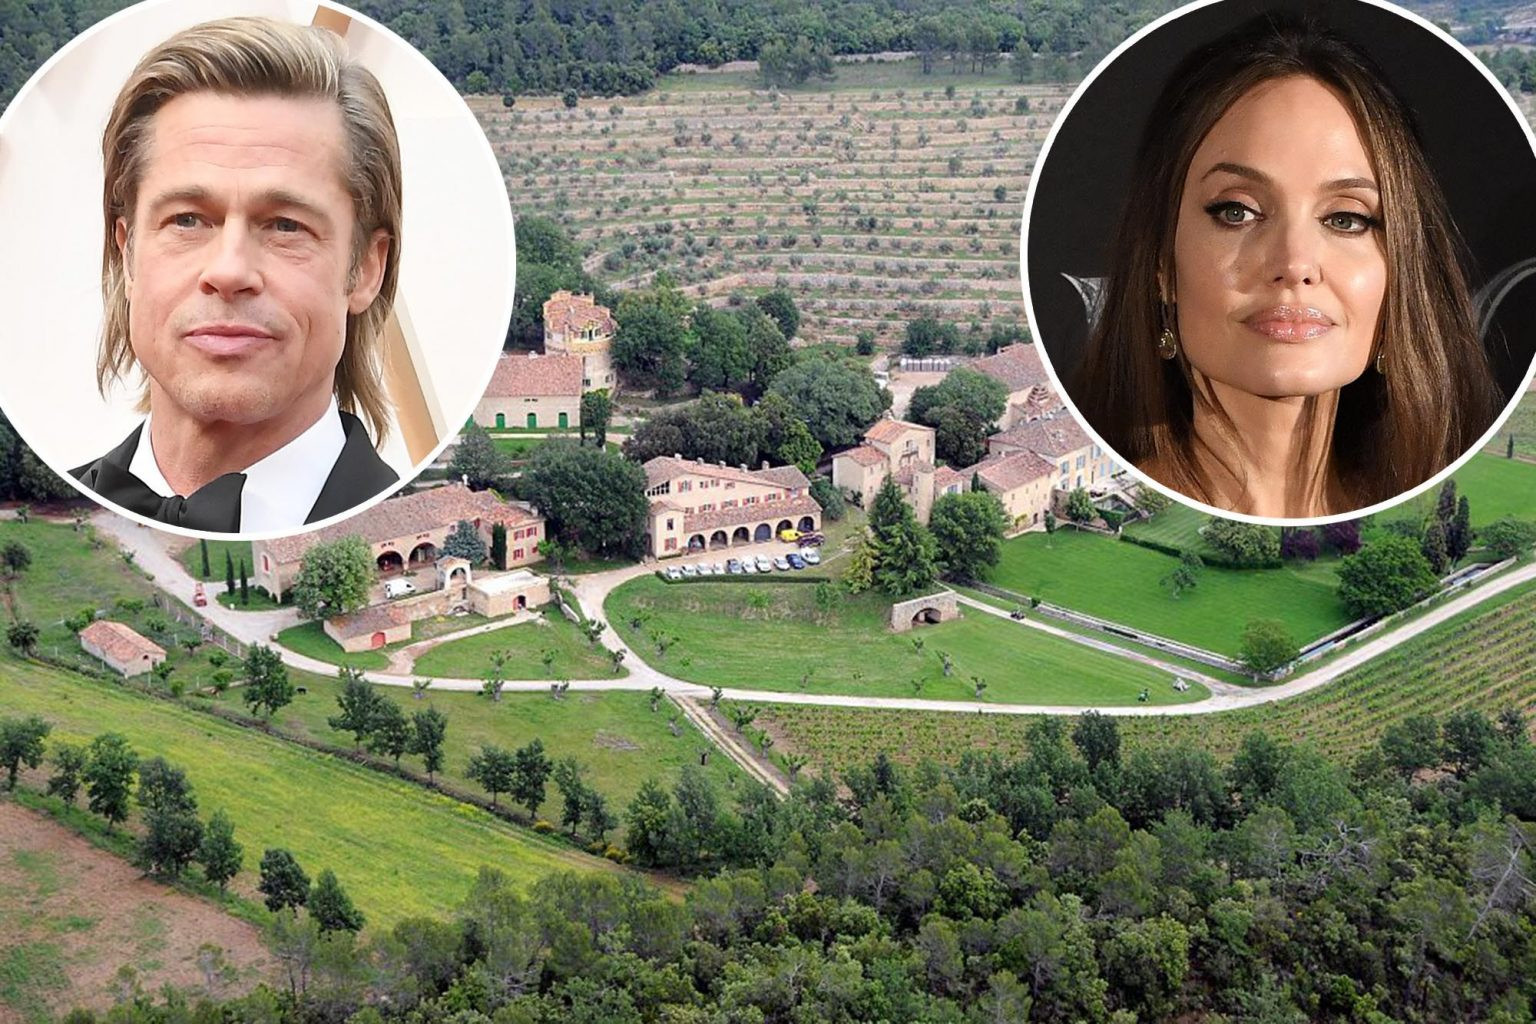 Angelina Jolie sells stake in $164M French estate amid Brad Pitt divorce